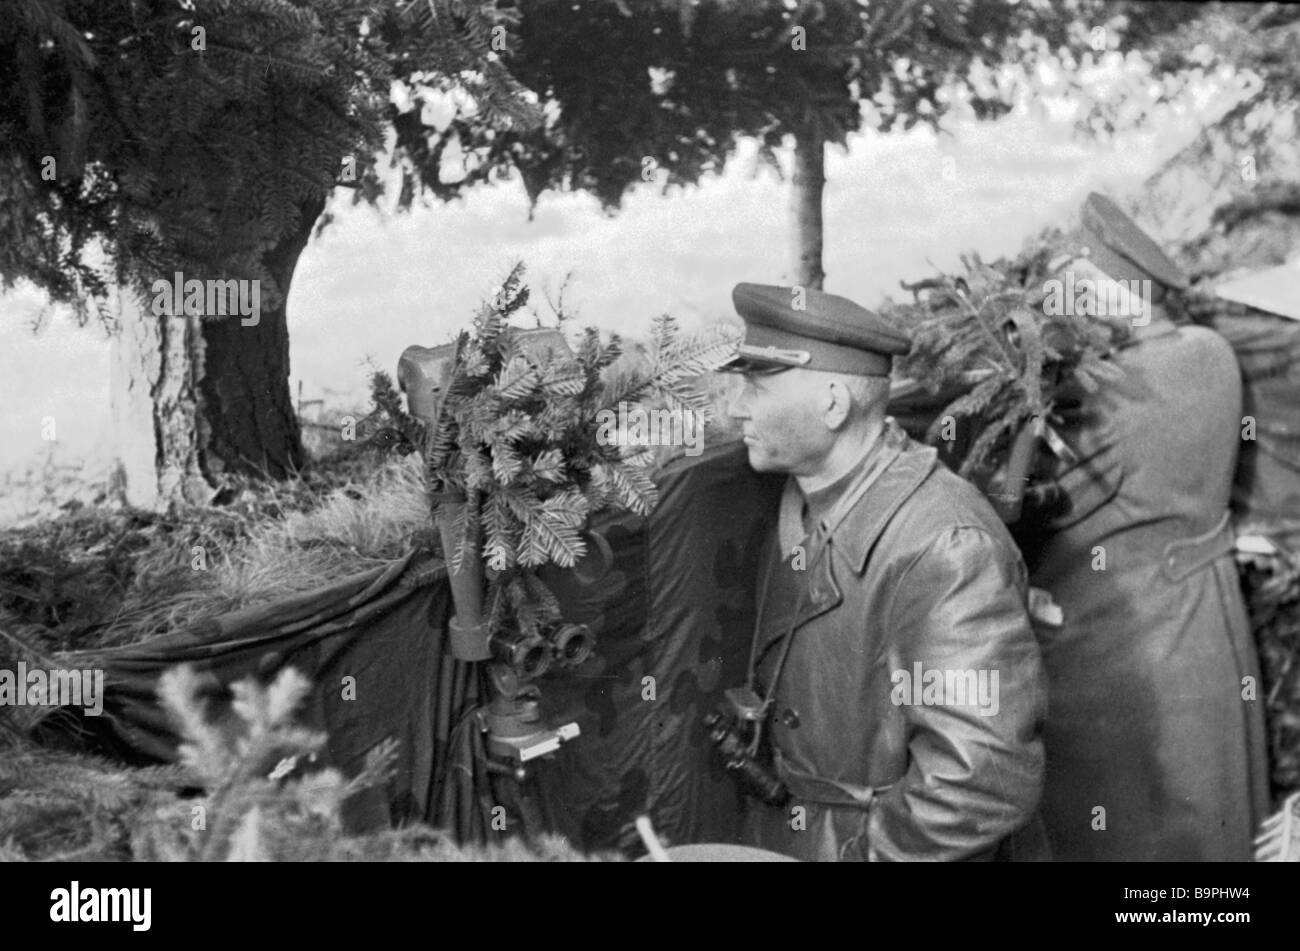 Front commander Marshal of the Soviet Union I Konev observing a battle near Krosno - Stock Image